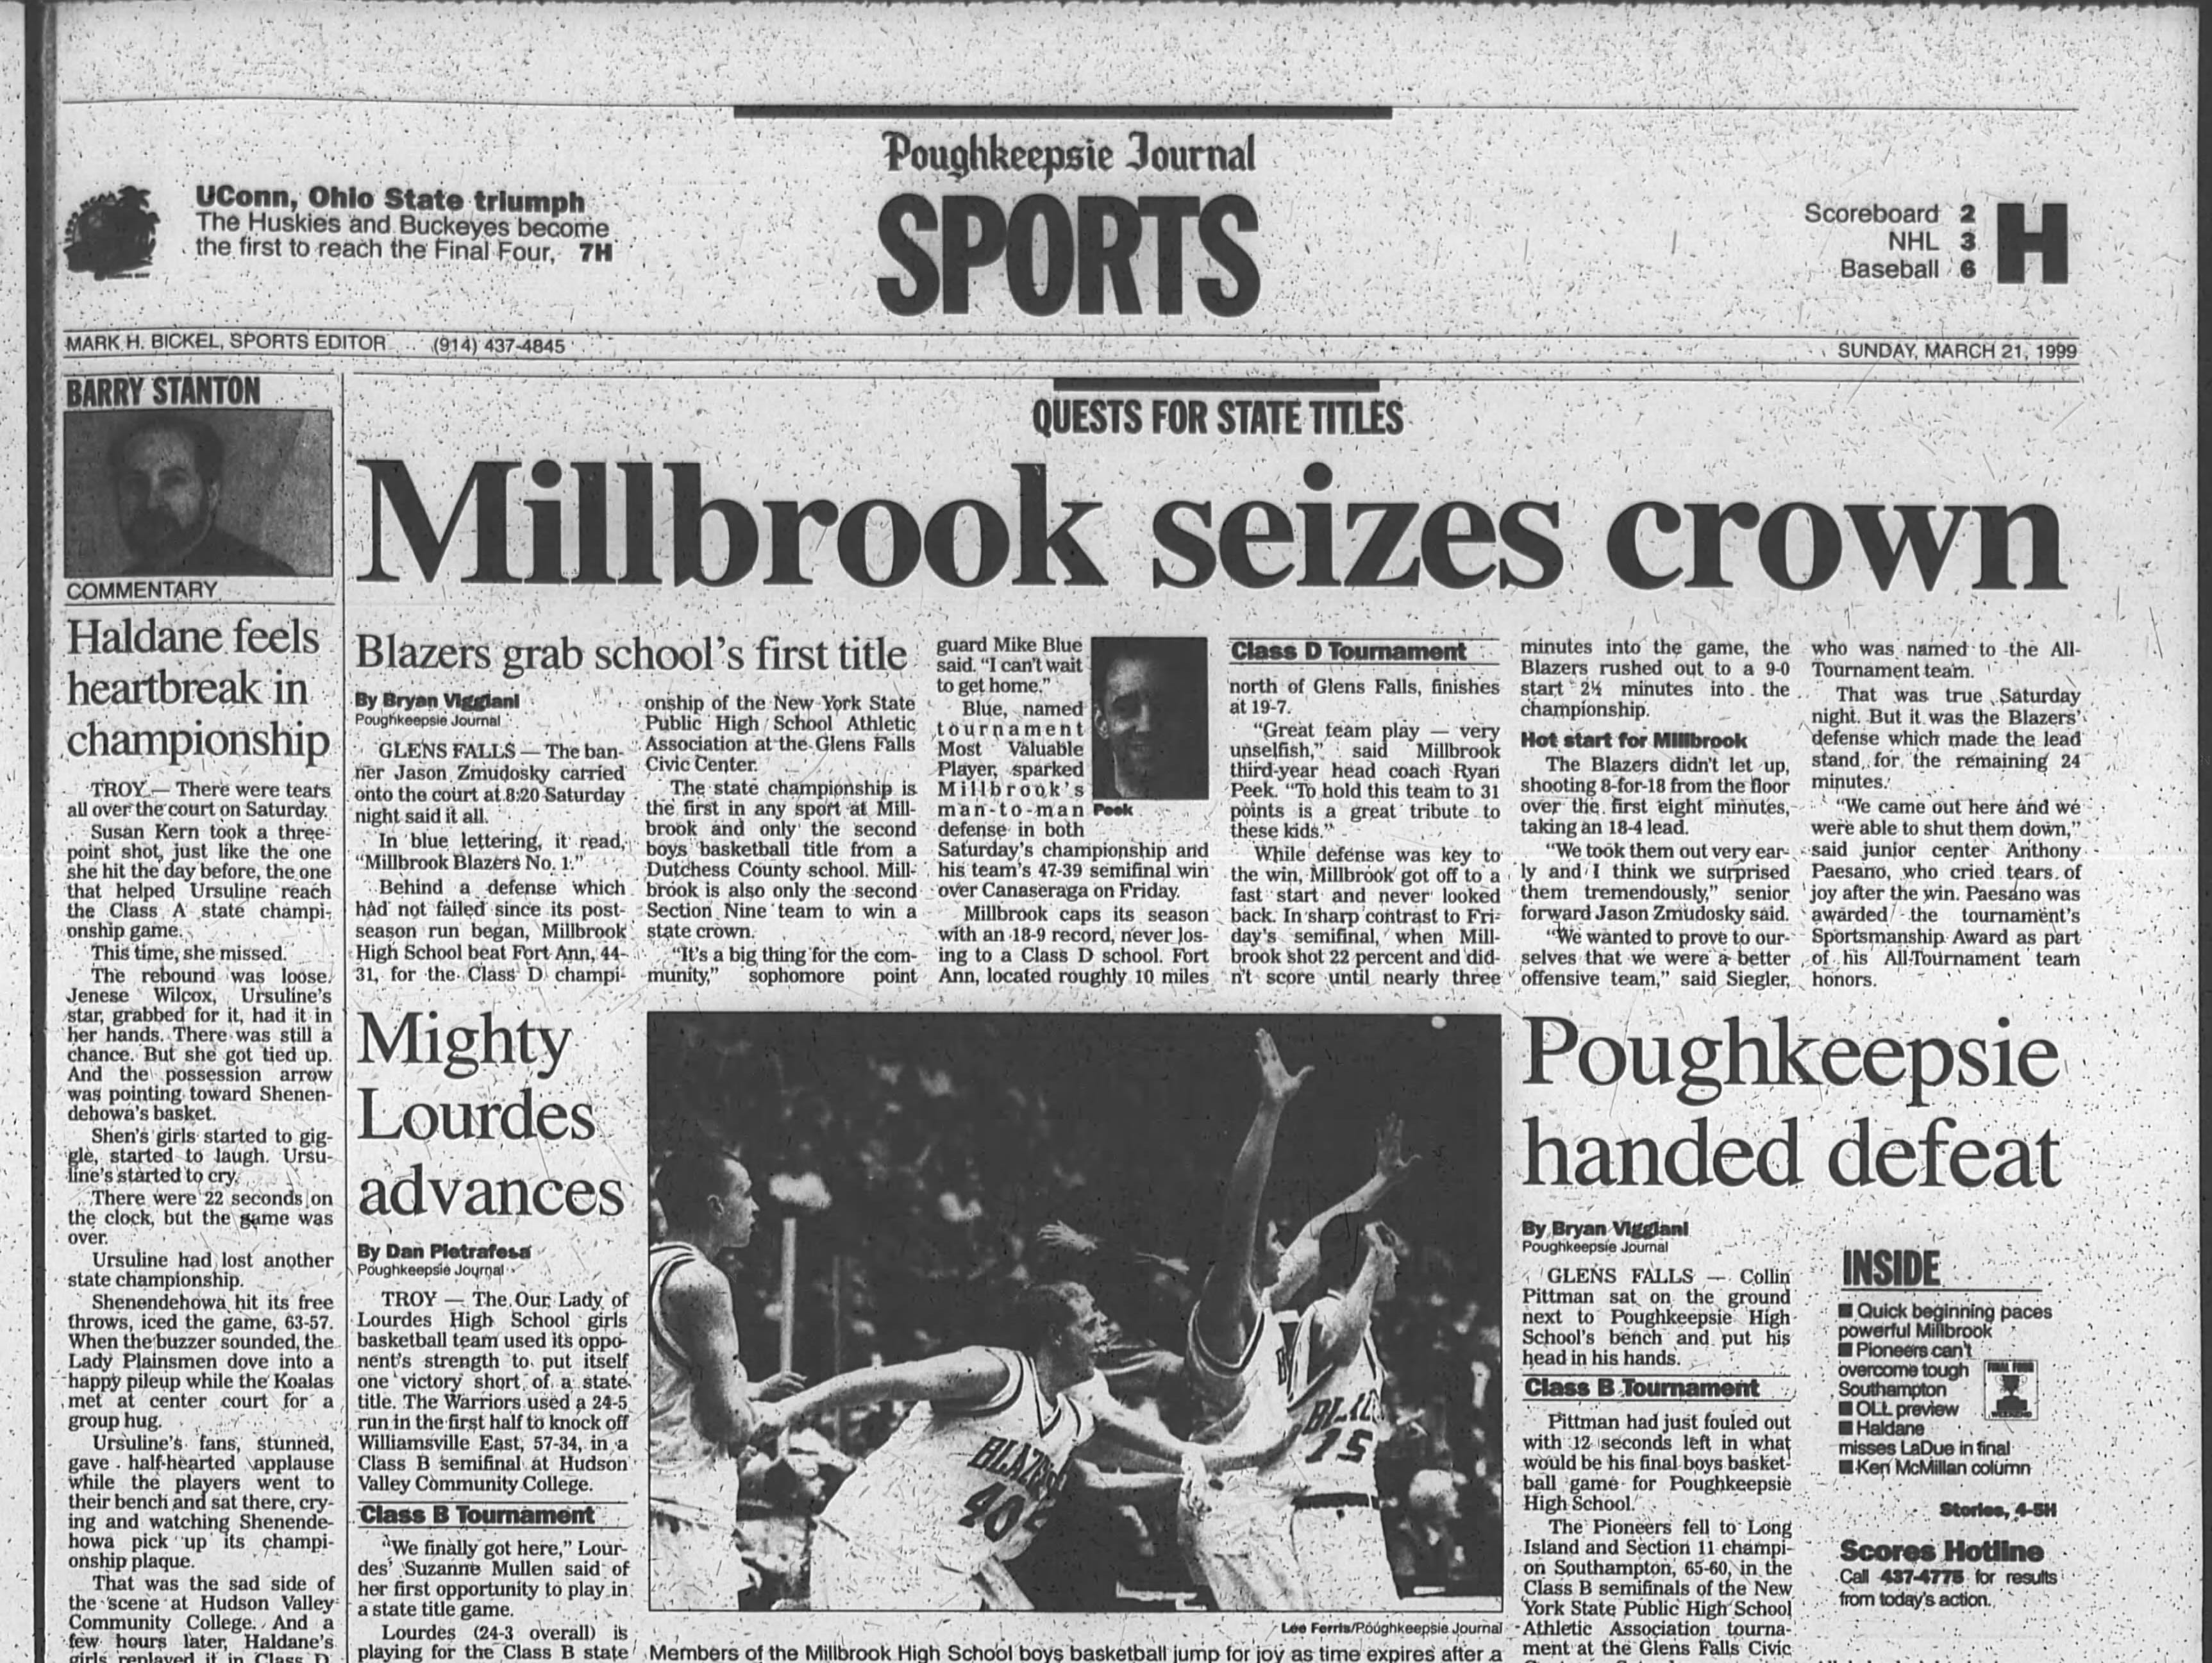 Millbrook High School's New York State Class D championship led the Journal's Sports cover on March 21, 1999.